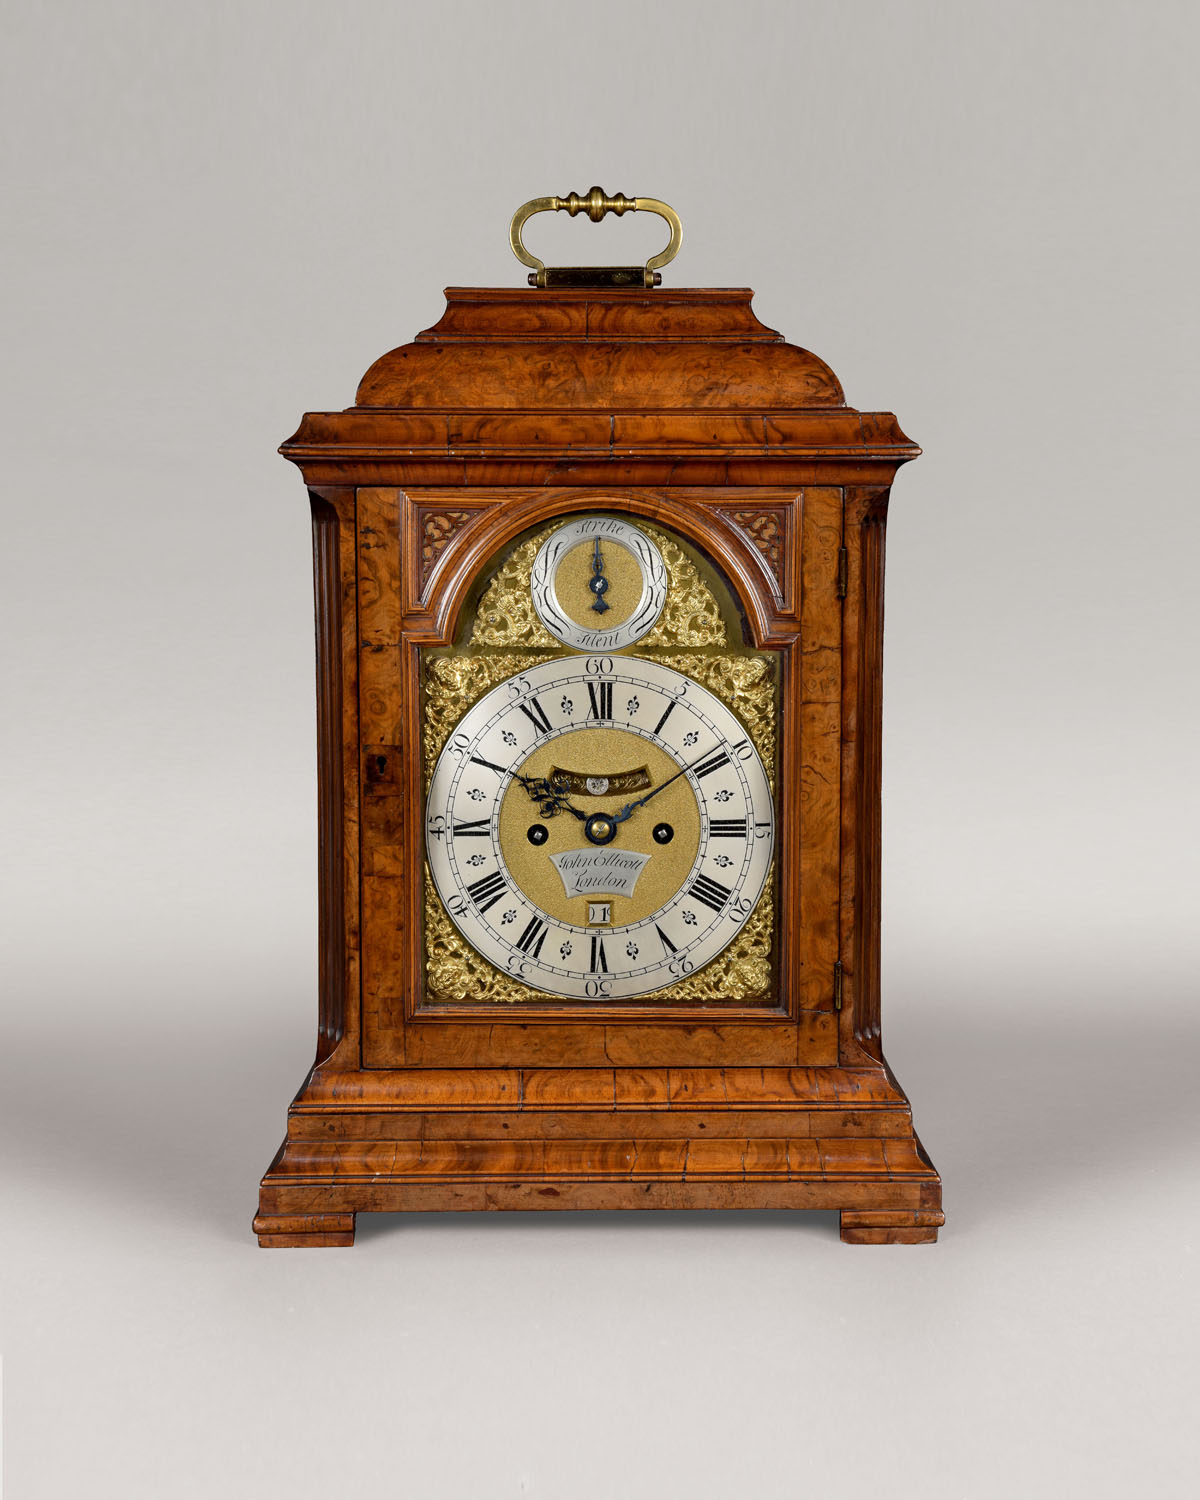 JOHN ELLICOTT, LONDON. A fine, late George II period walnut table clock by this celebrated Royal maker.